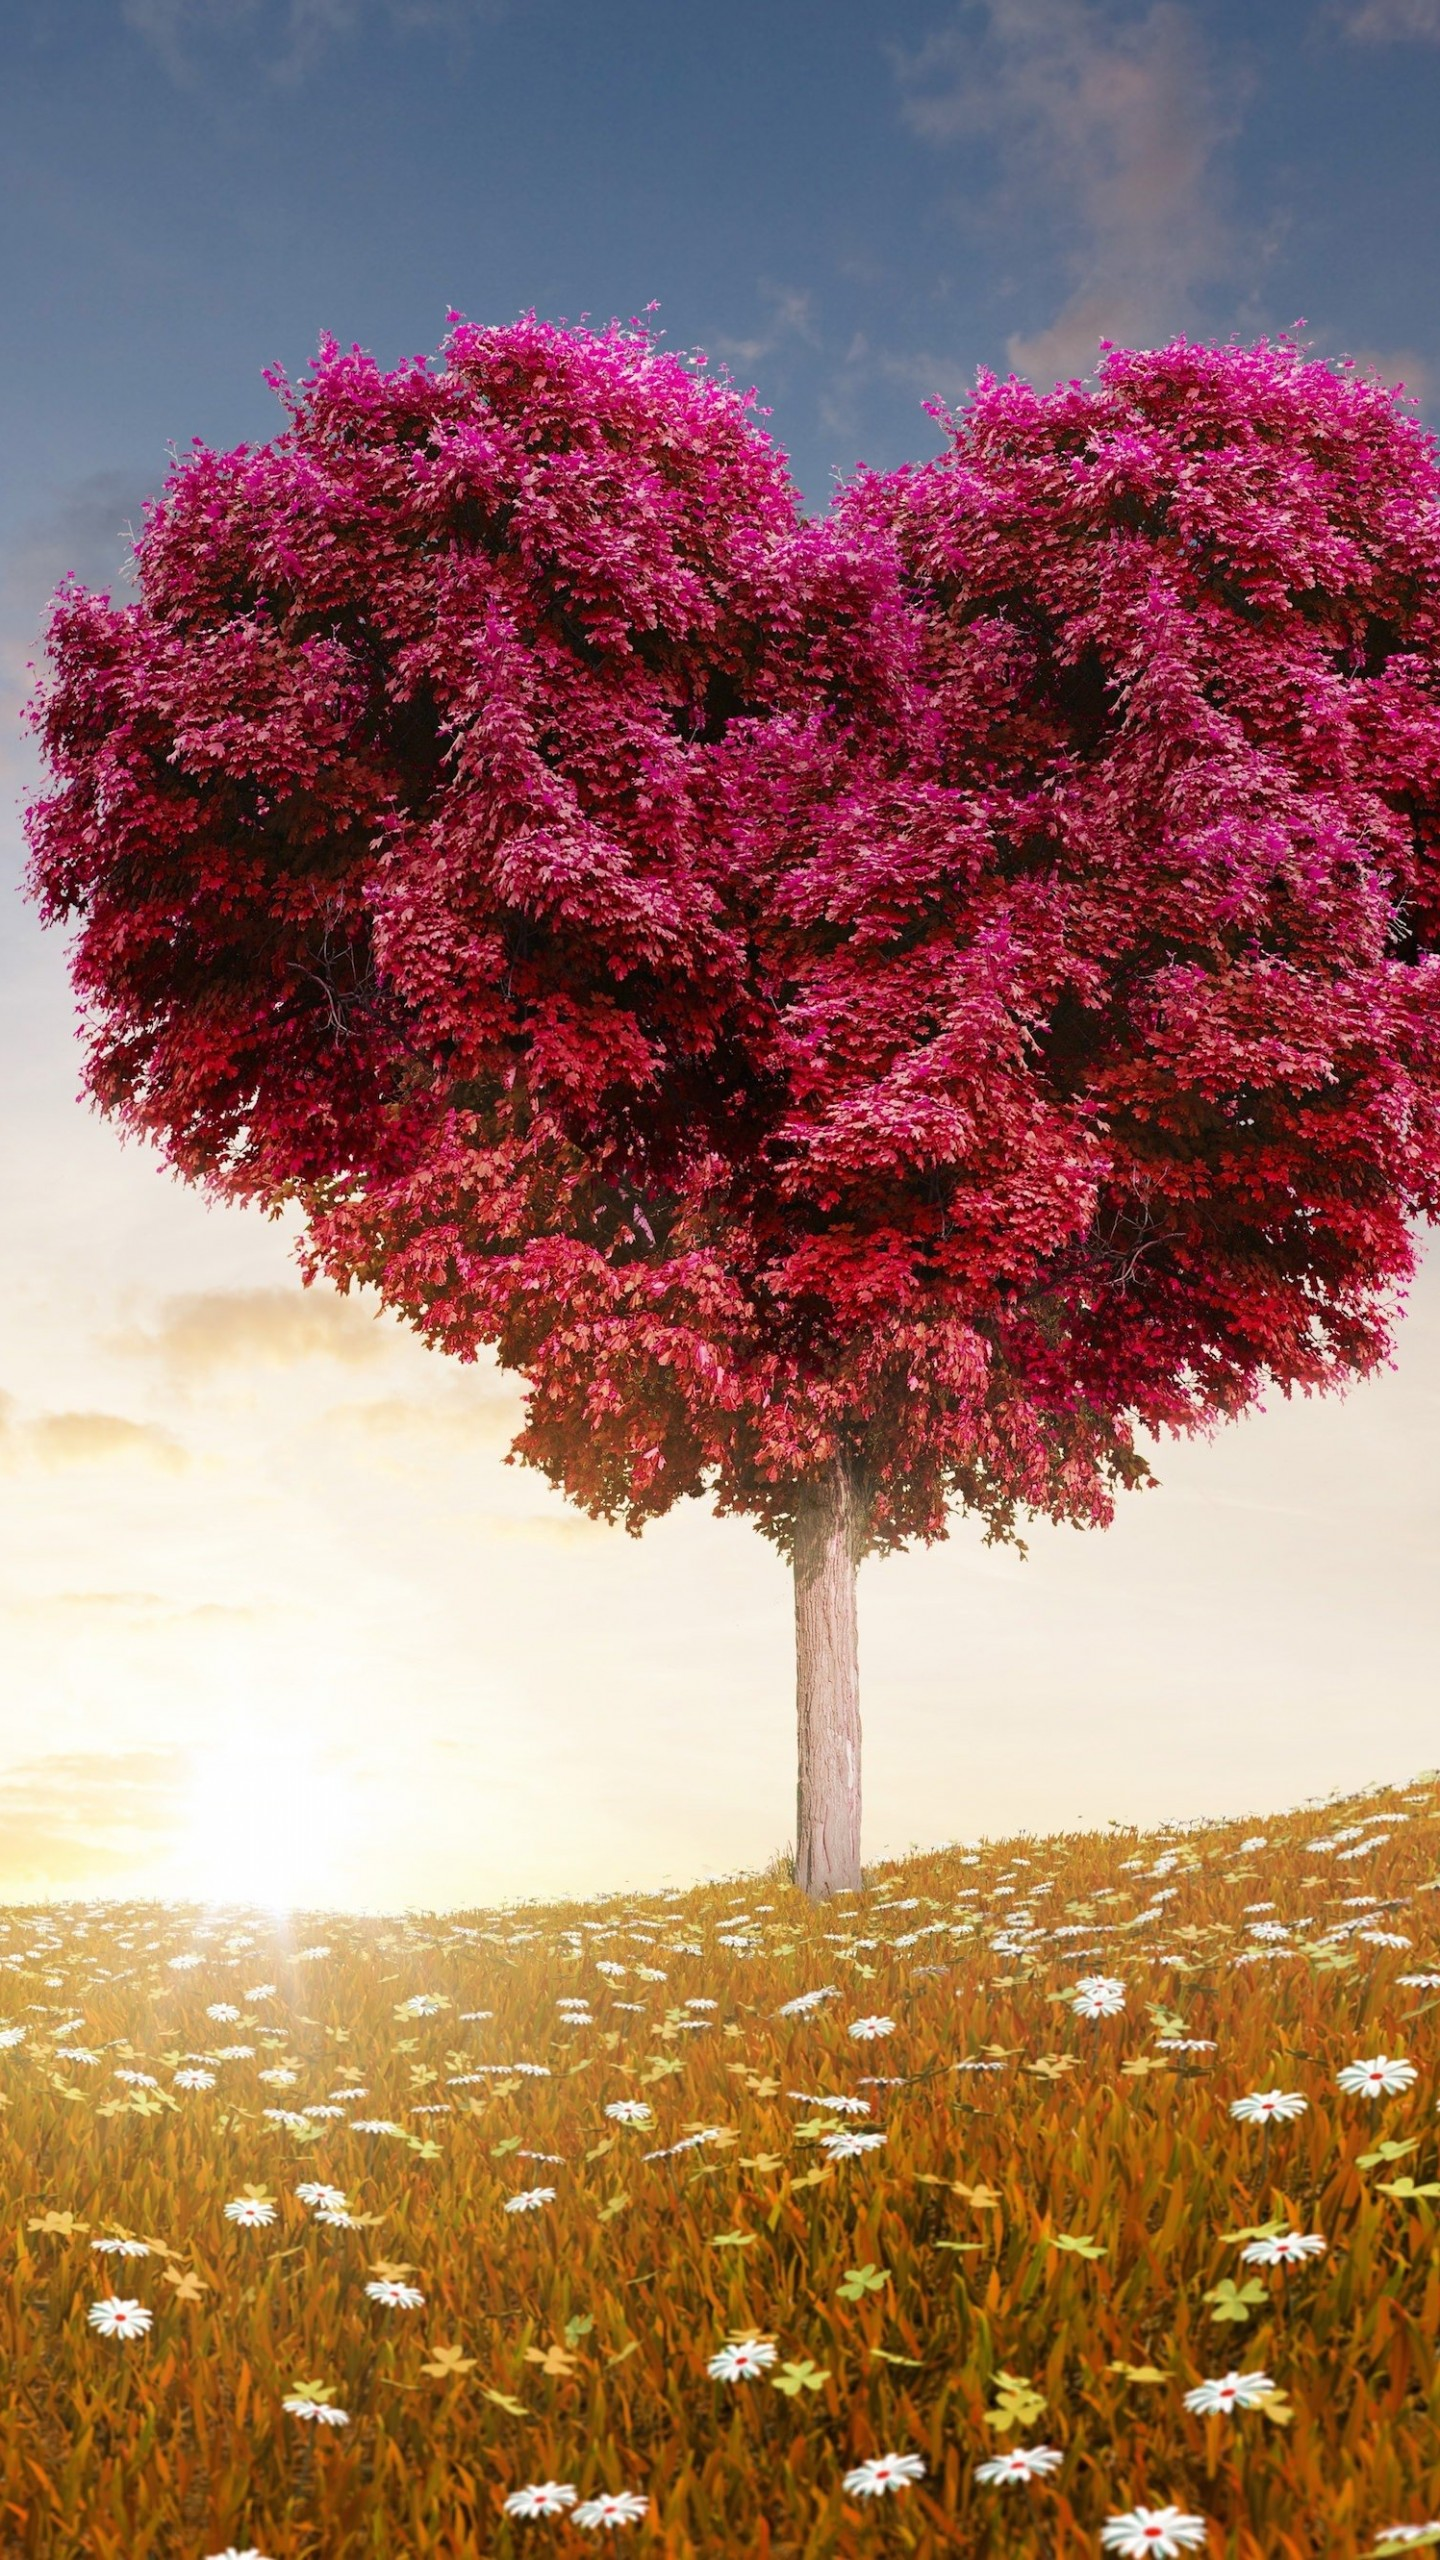 Tree Of Love Wallpaper for SAMSUNG Galaxy Note 4